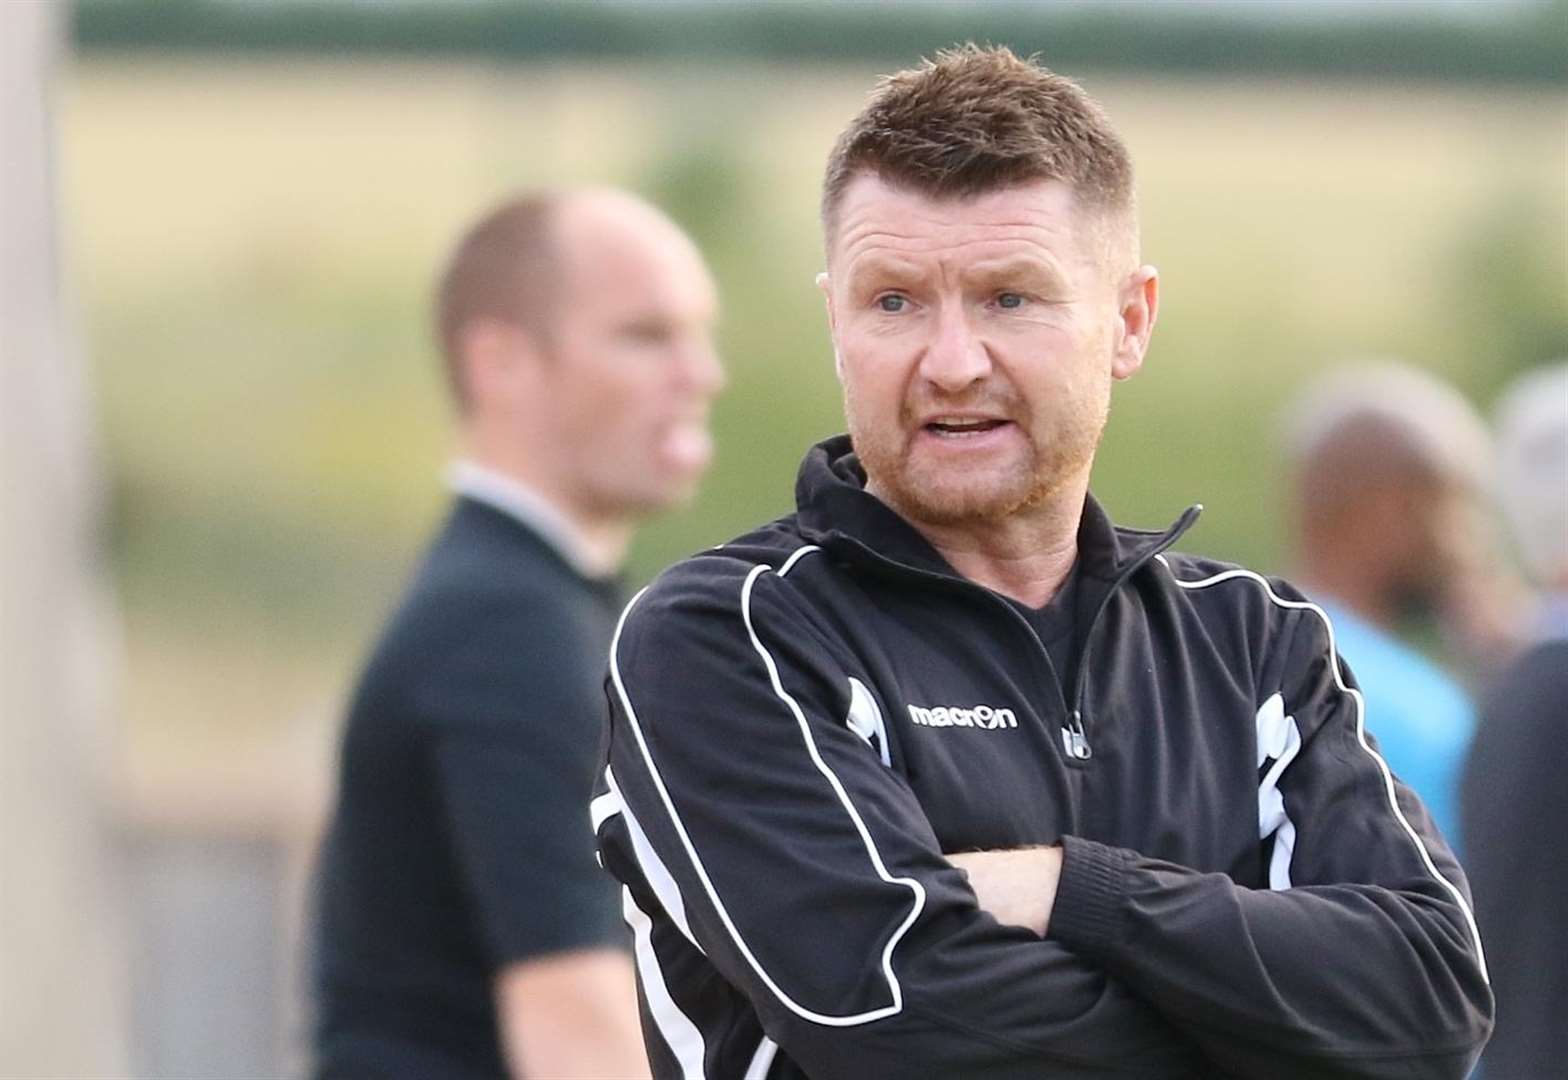 FOOTBALL: It's all coming together, says delighted Daniels boss